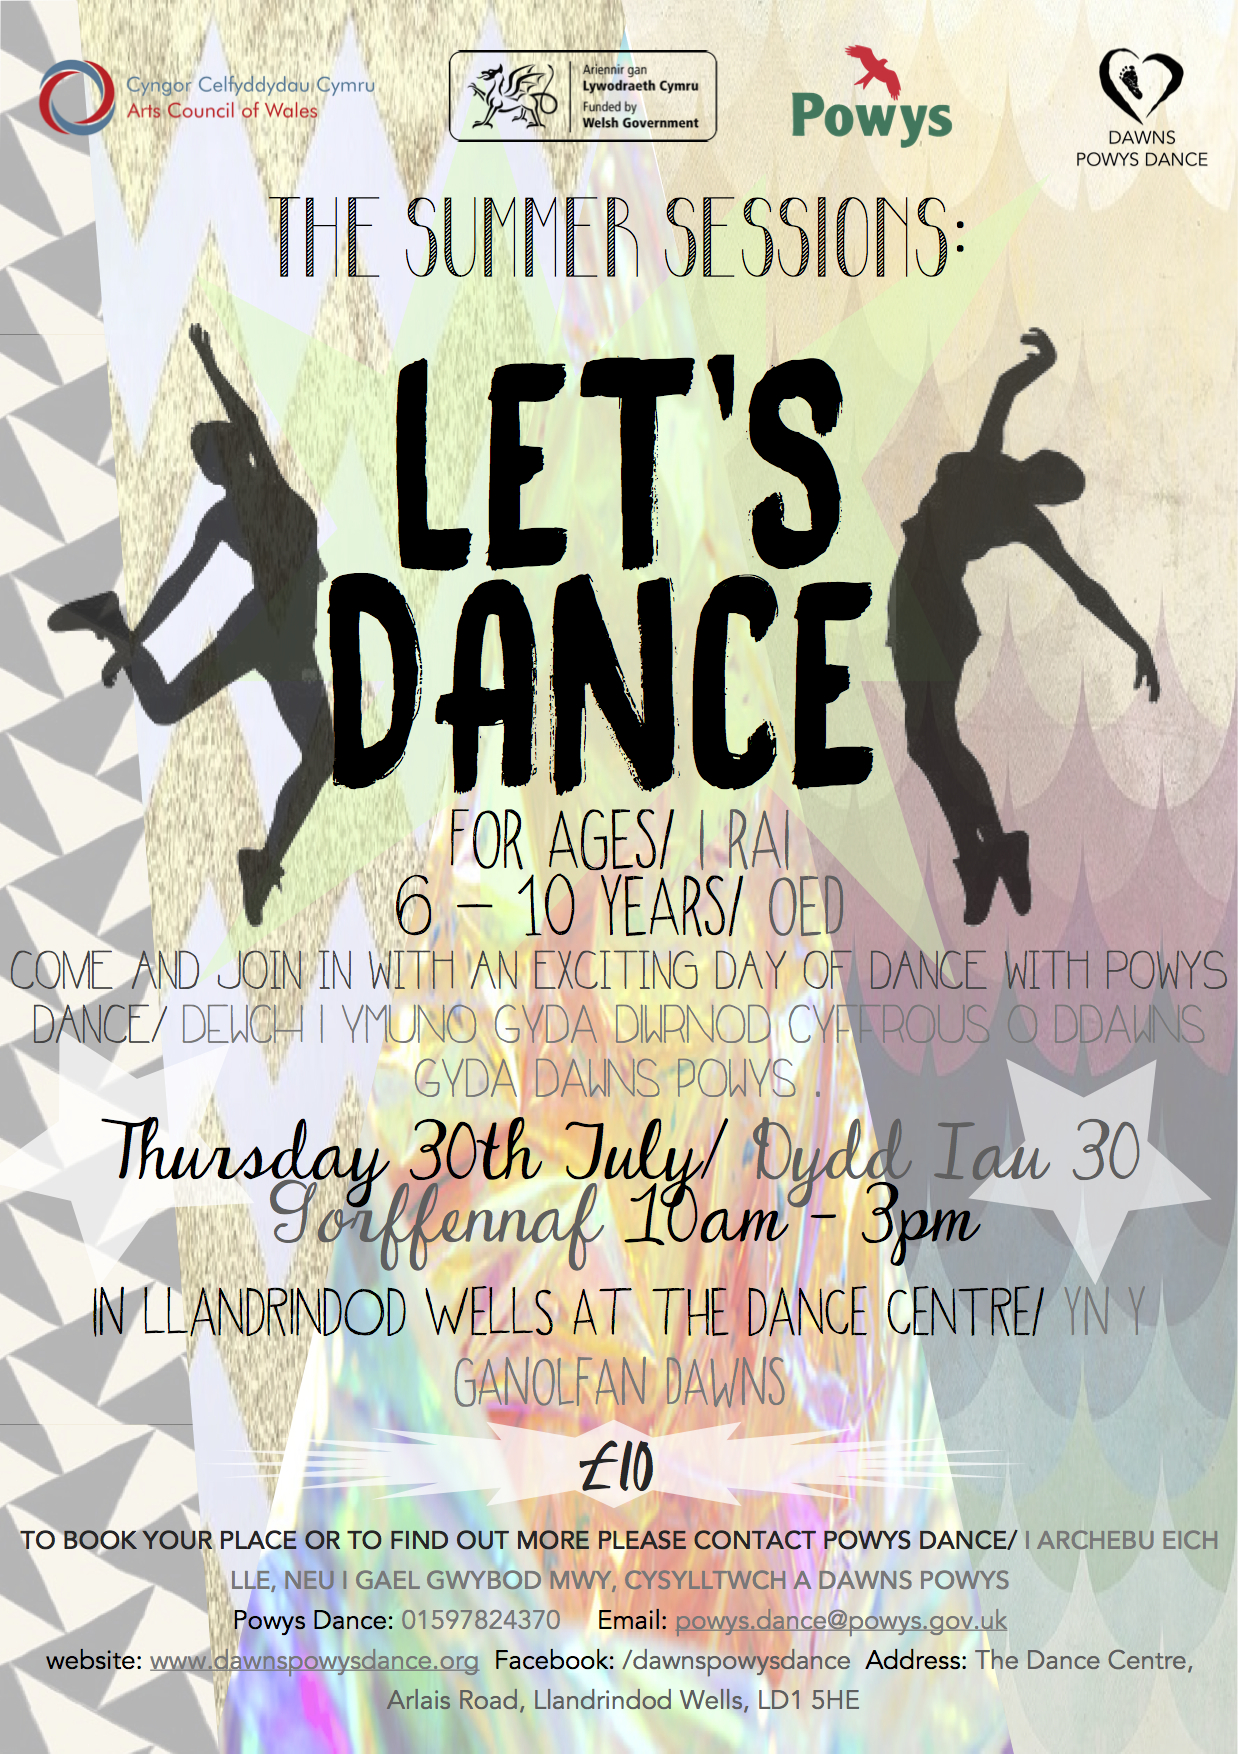 LETS DANCE THURSDAY